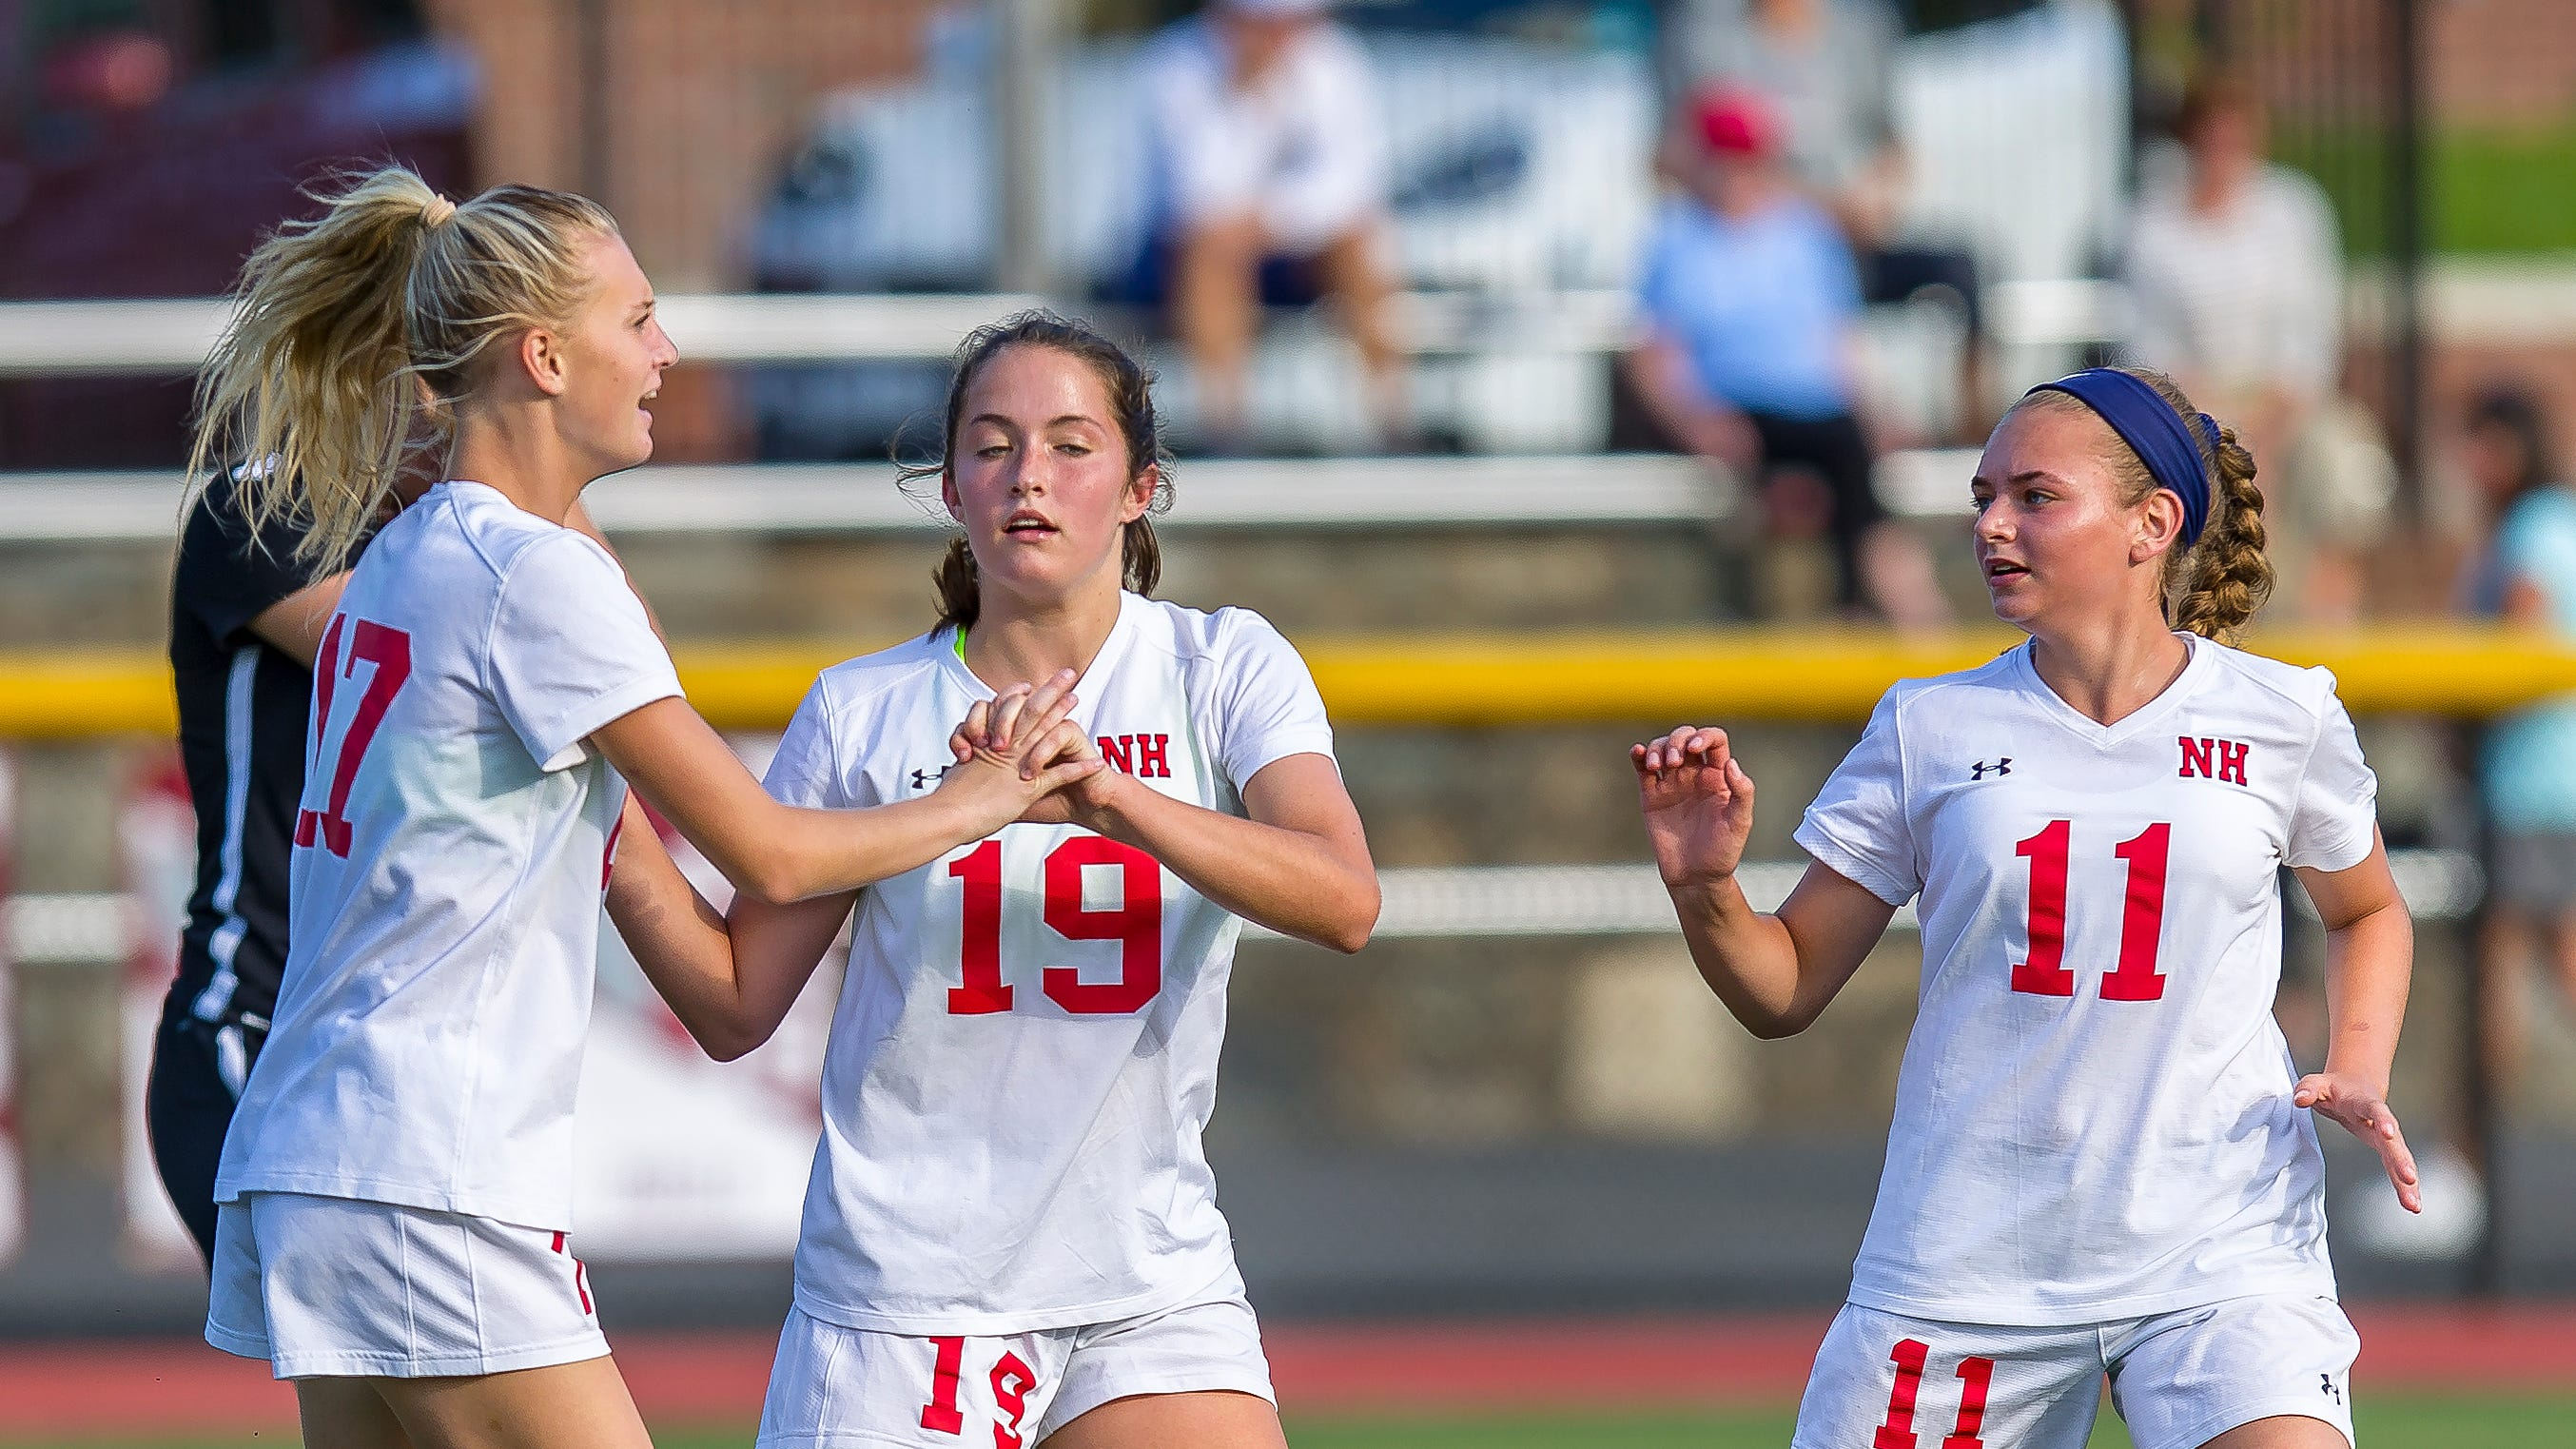 Brooke Boyer of Northern Highlands celebrates her goal with teammates Reagan Klarmann (19) and Carly Riembauer (11) during girls high school soccer action Northern Highlands plays Ridgewood.